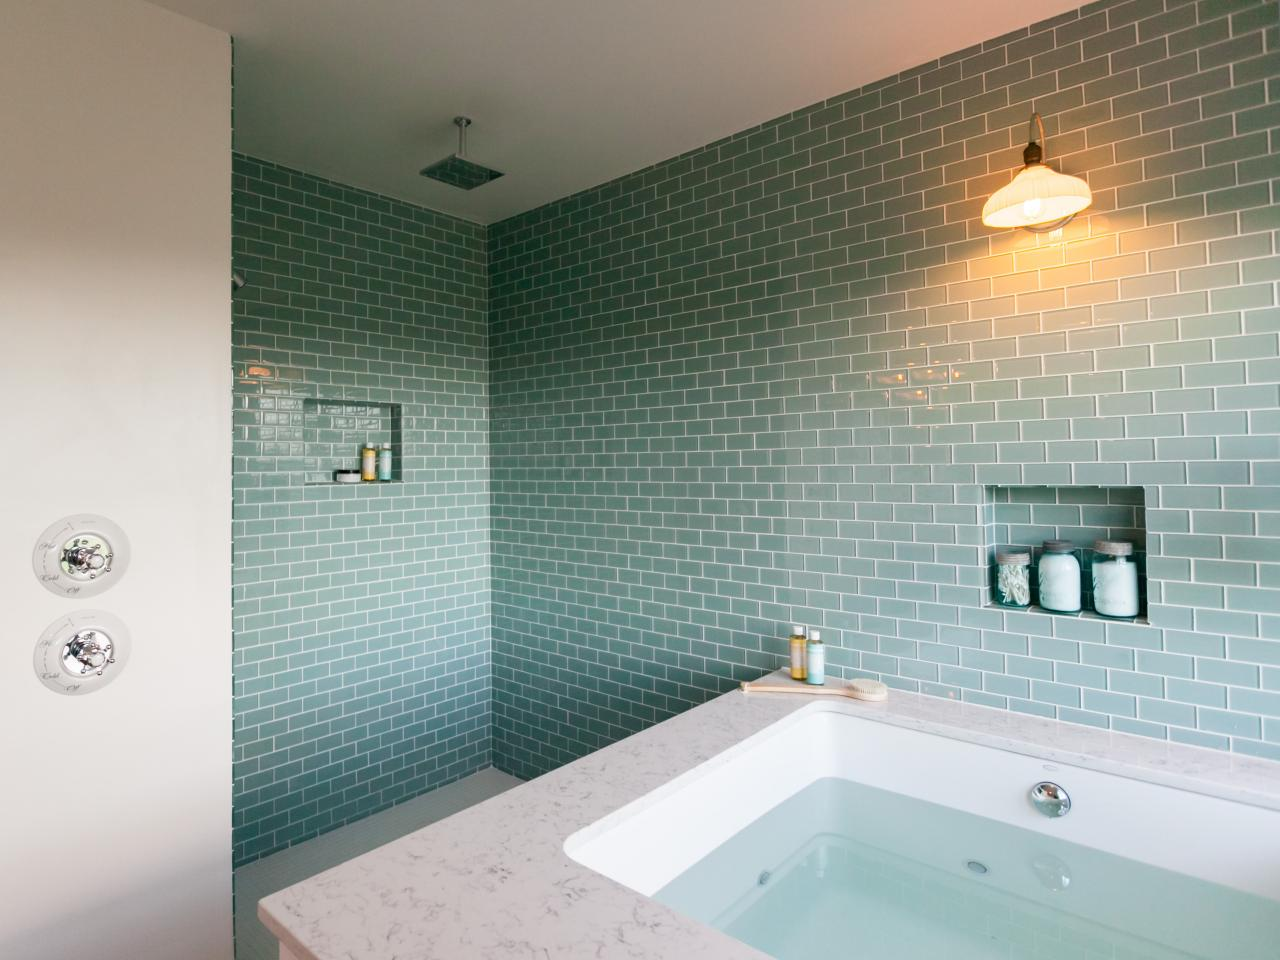 Which Master Bathroom is Your Favorite? | DIY Network Blog Cabin ...